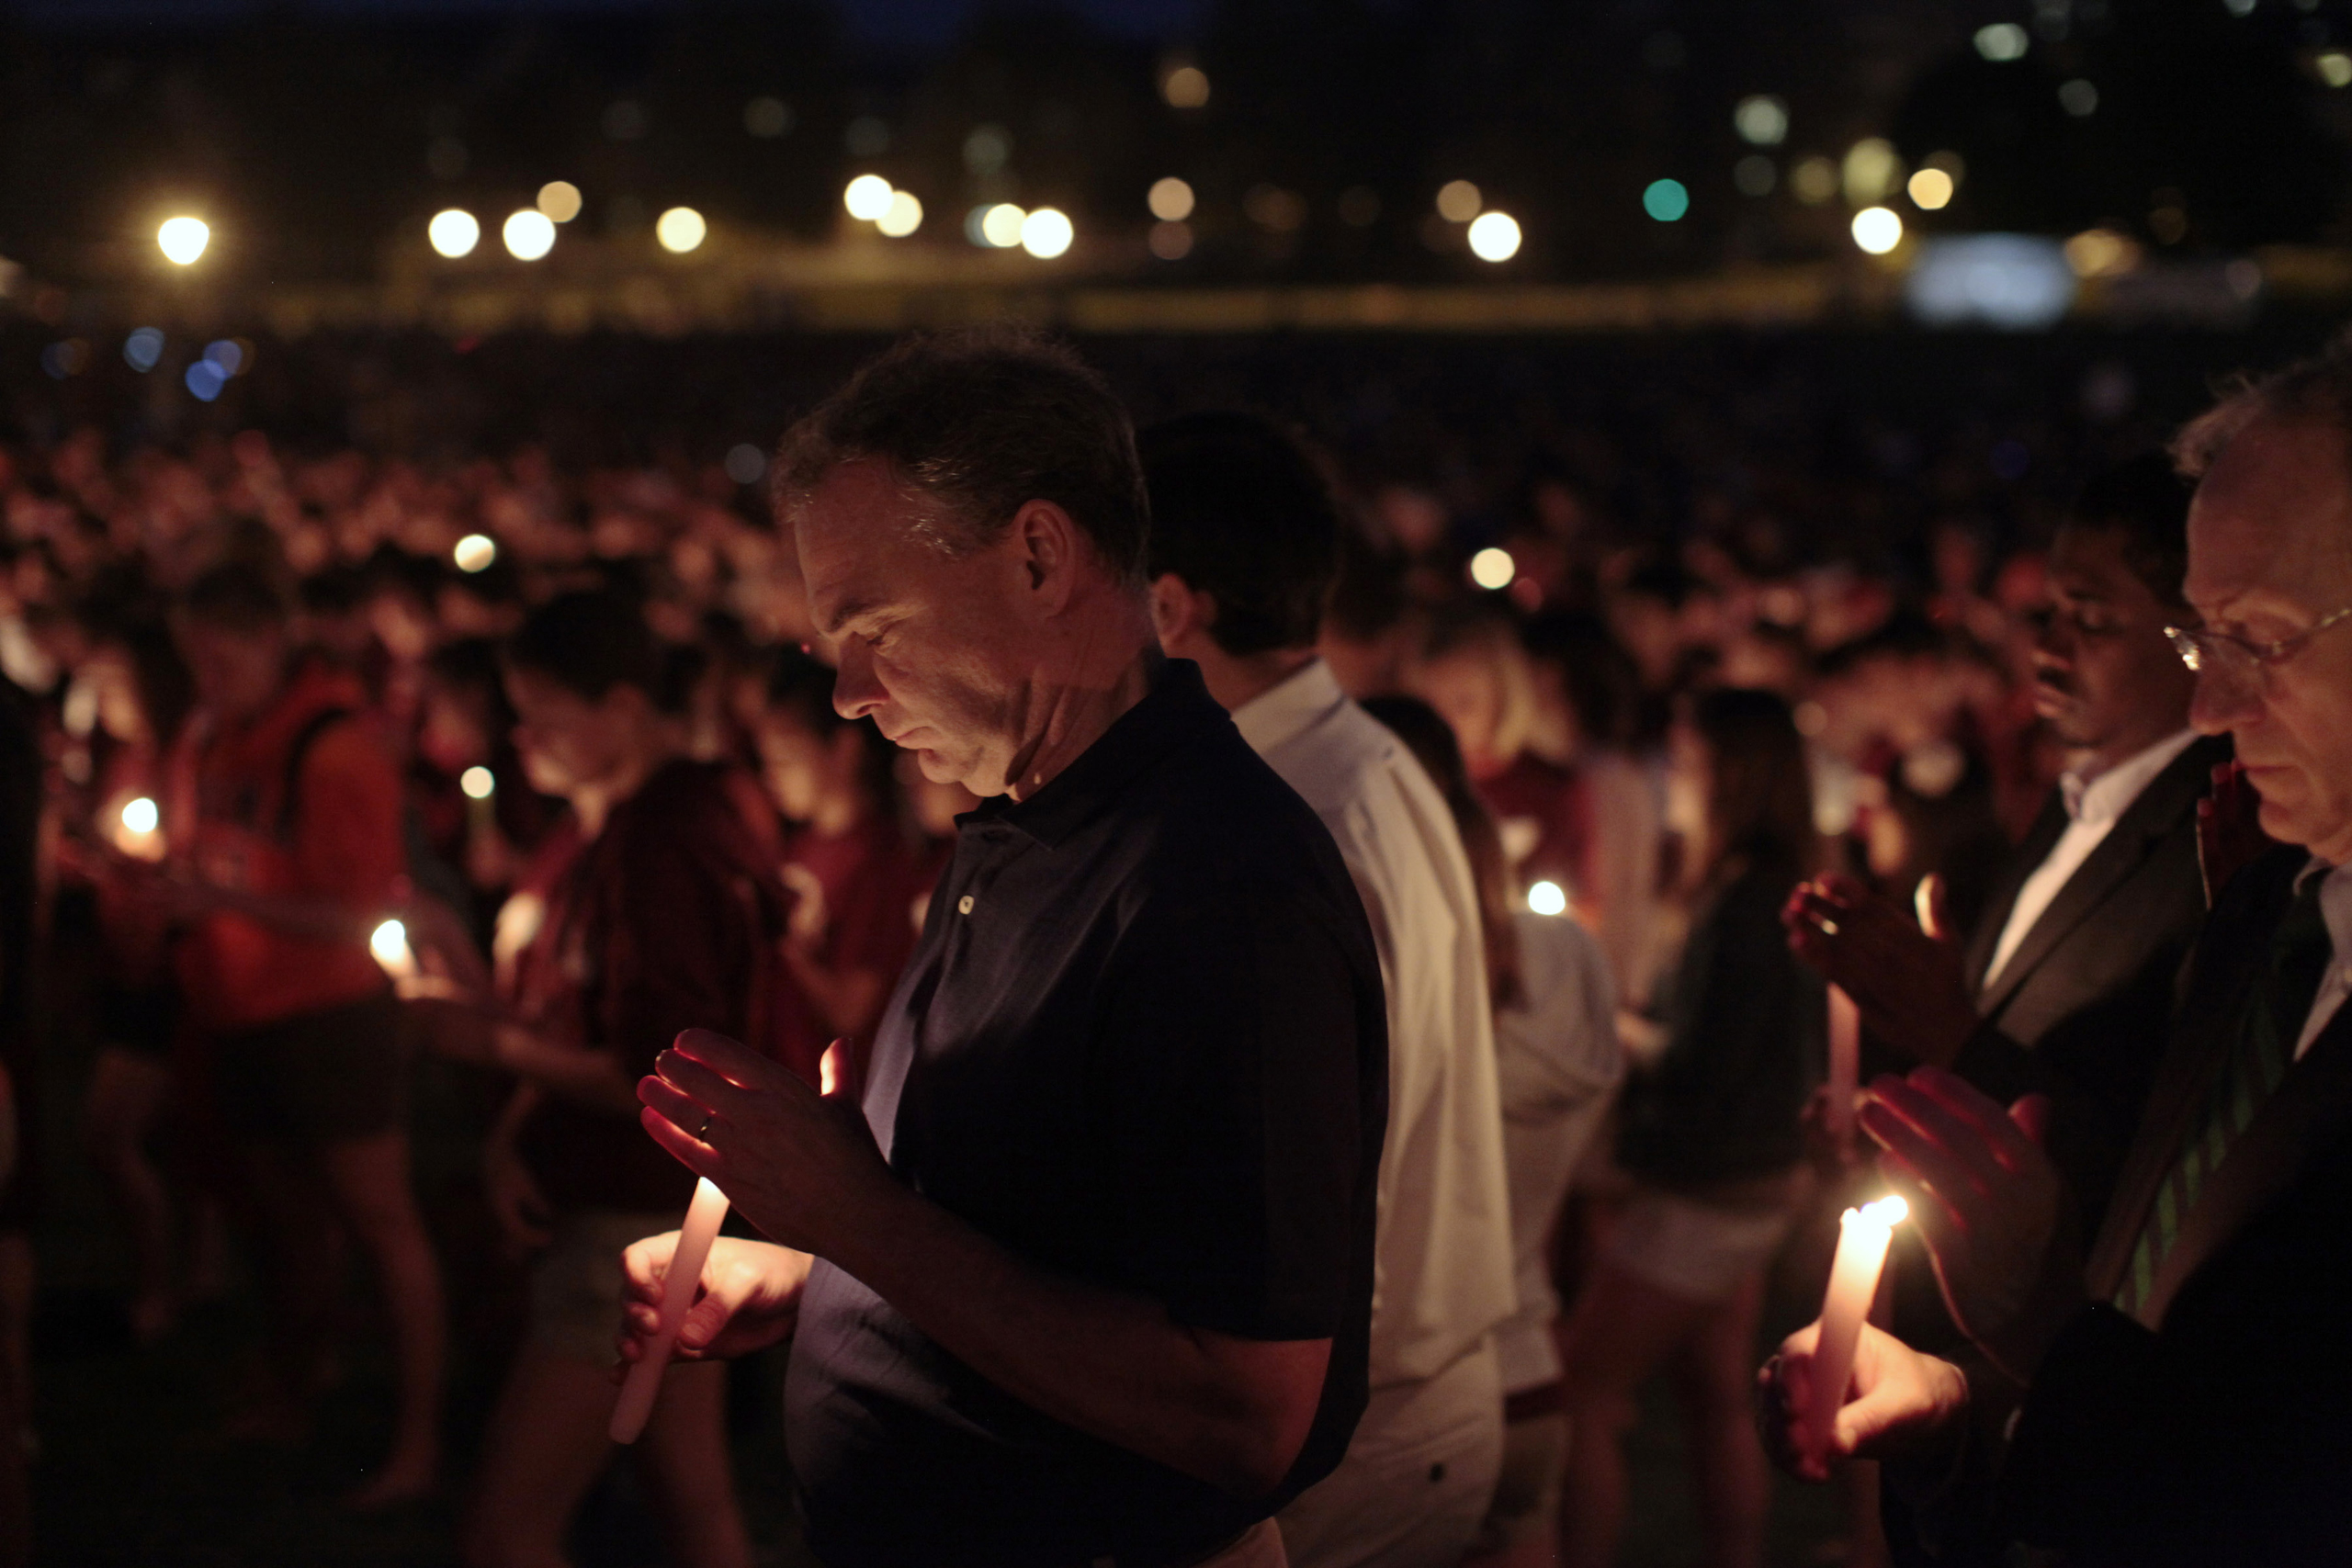 Former Governor of Virginia and Democratic U.S. Sen. candidate Tim Kaine  attends a candlelight vigil held on campus at Virginia Tech in Blacksburg, Va. on April 16, 2012.